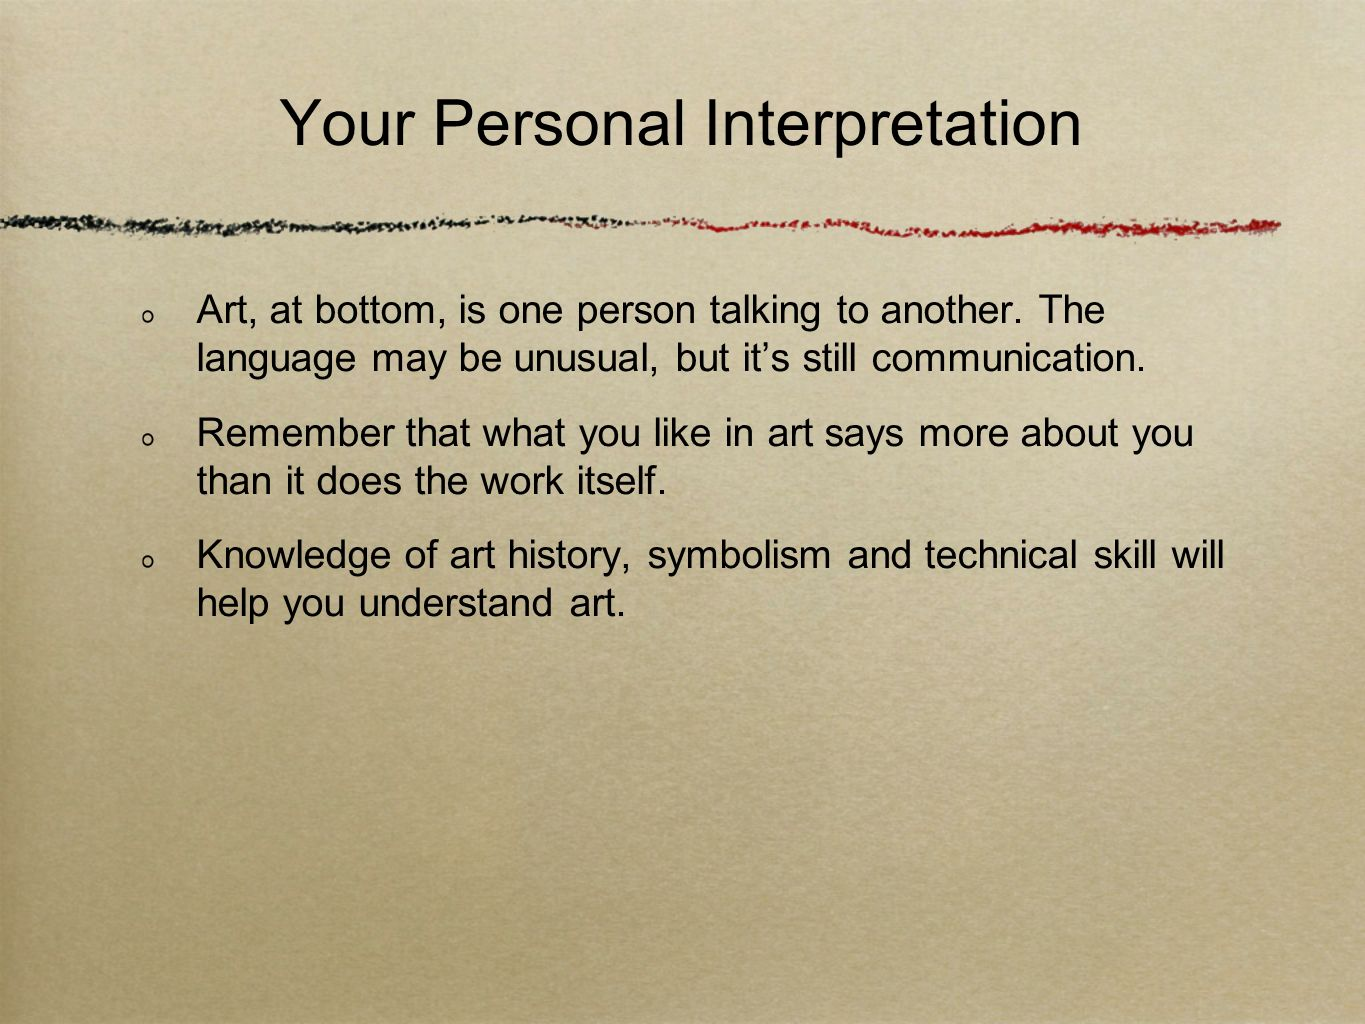 Your Personal Interpretation